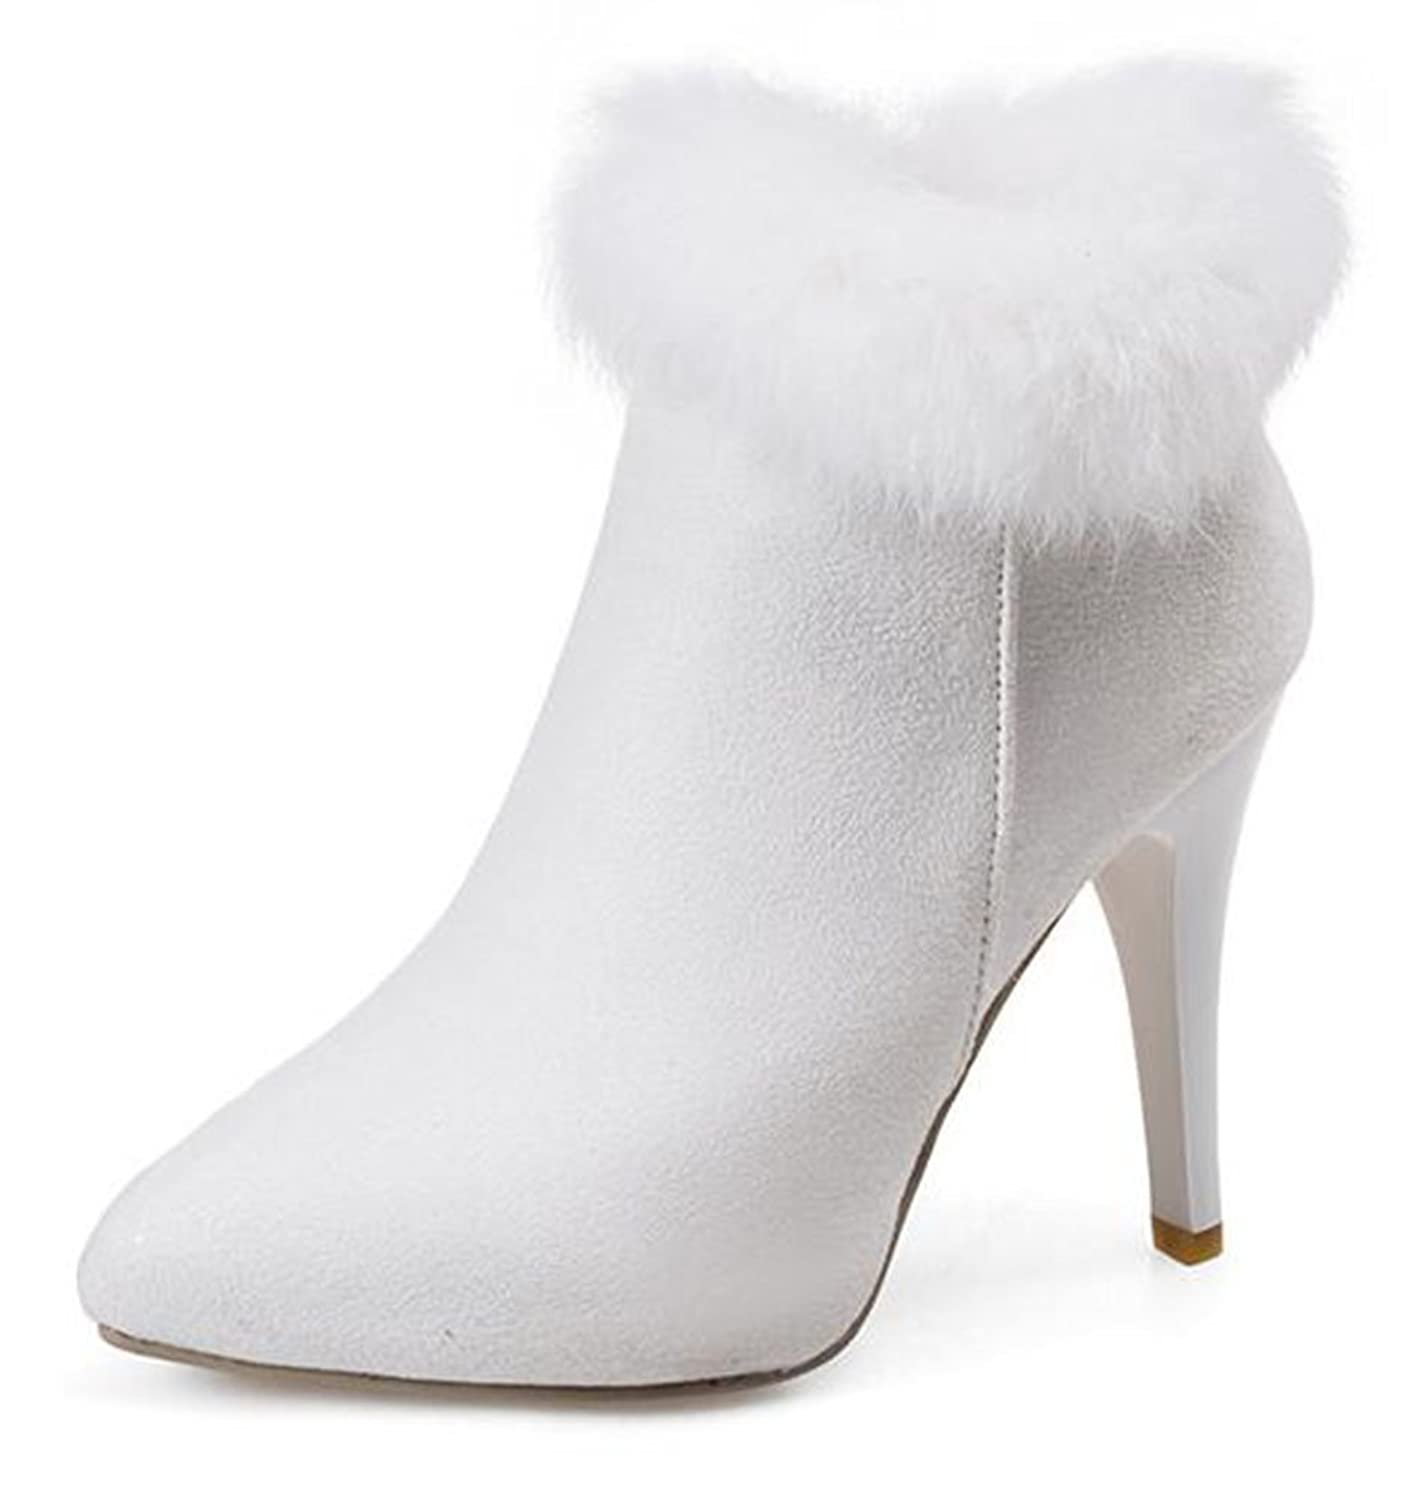 Women's Elegant Stiletto Waterproof Suede Fully Fur Lined Pointed Toe Zipper High Heel Ankle Winter Boots